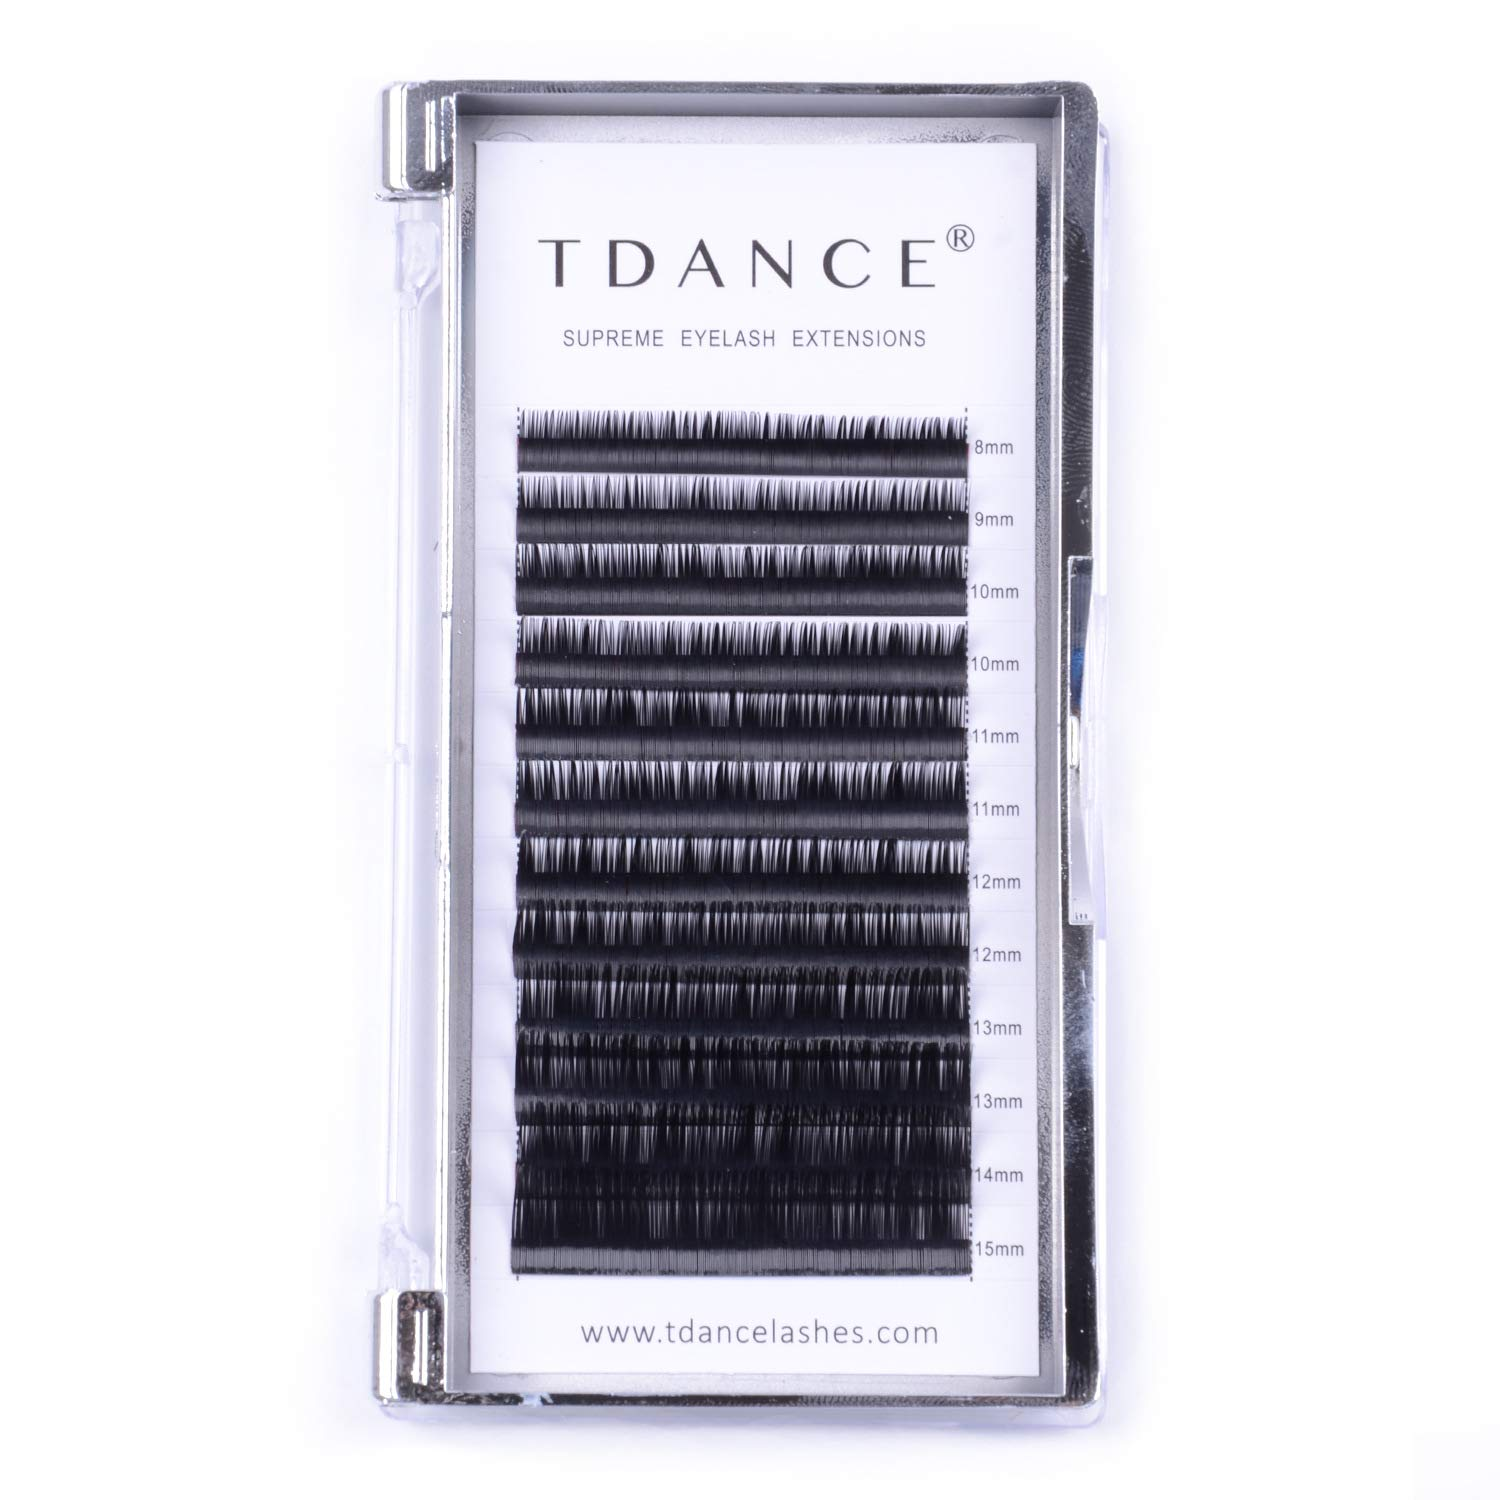 dd04e93be1b TDANCE Eyelash Extension C Curl 0.07mm Thickness Semi Permanent Individual Eyelash  Extensions Silk Volume Lashes